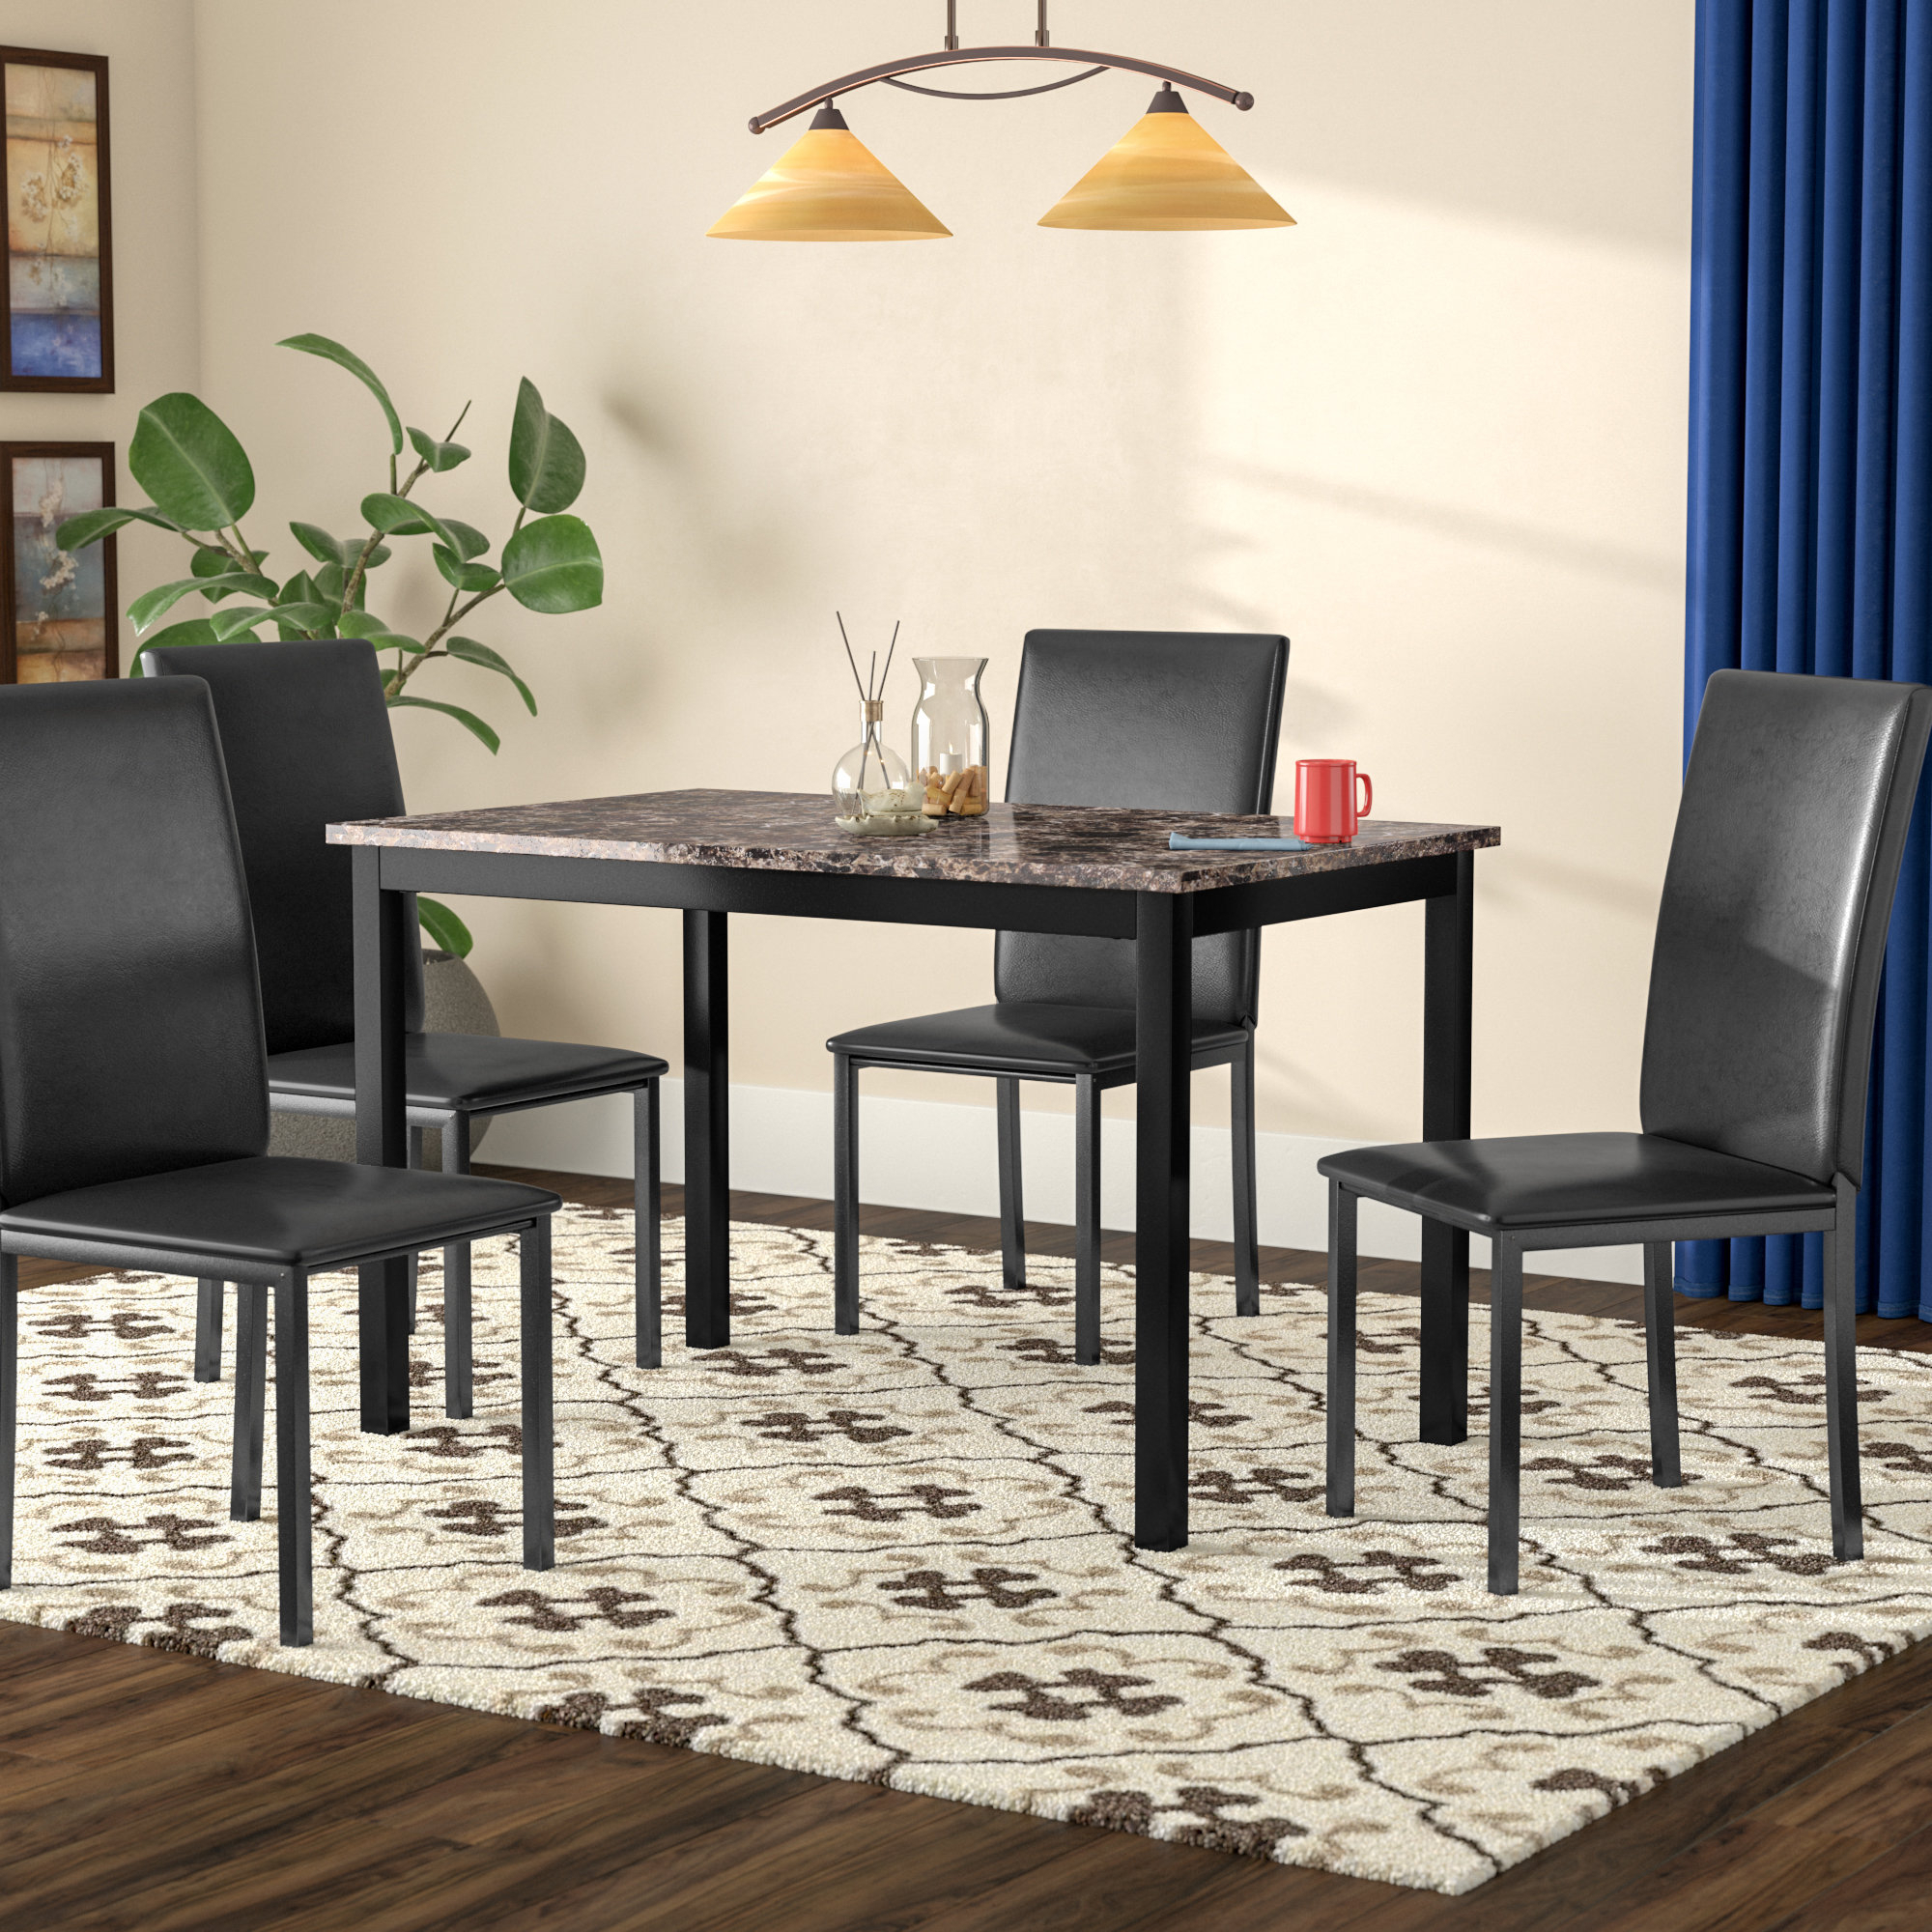 Anette 3 Piece Counter Height Dining Sets Regarding Most Up To Date Red Barrel Studio Noyes 5 Piece Dining Set & Reviews (View 6 of 25)